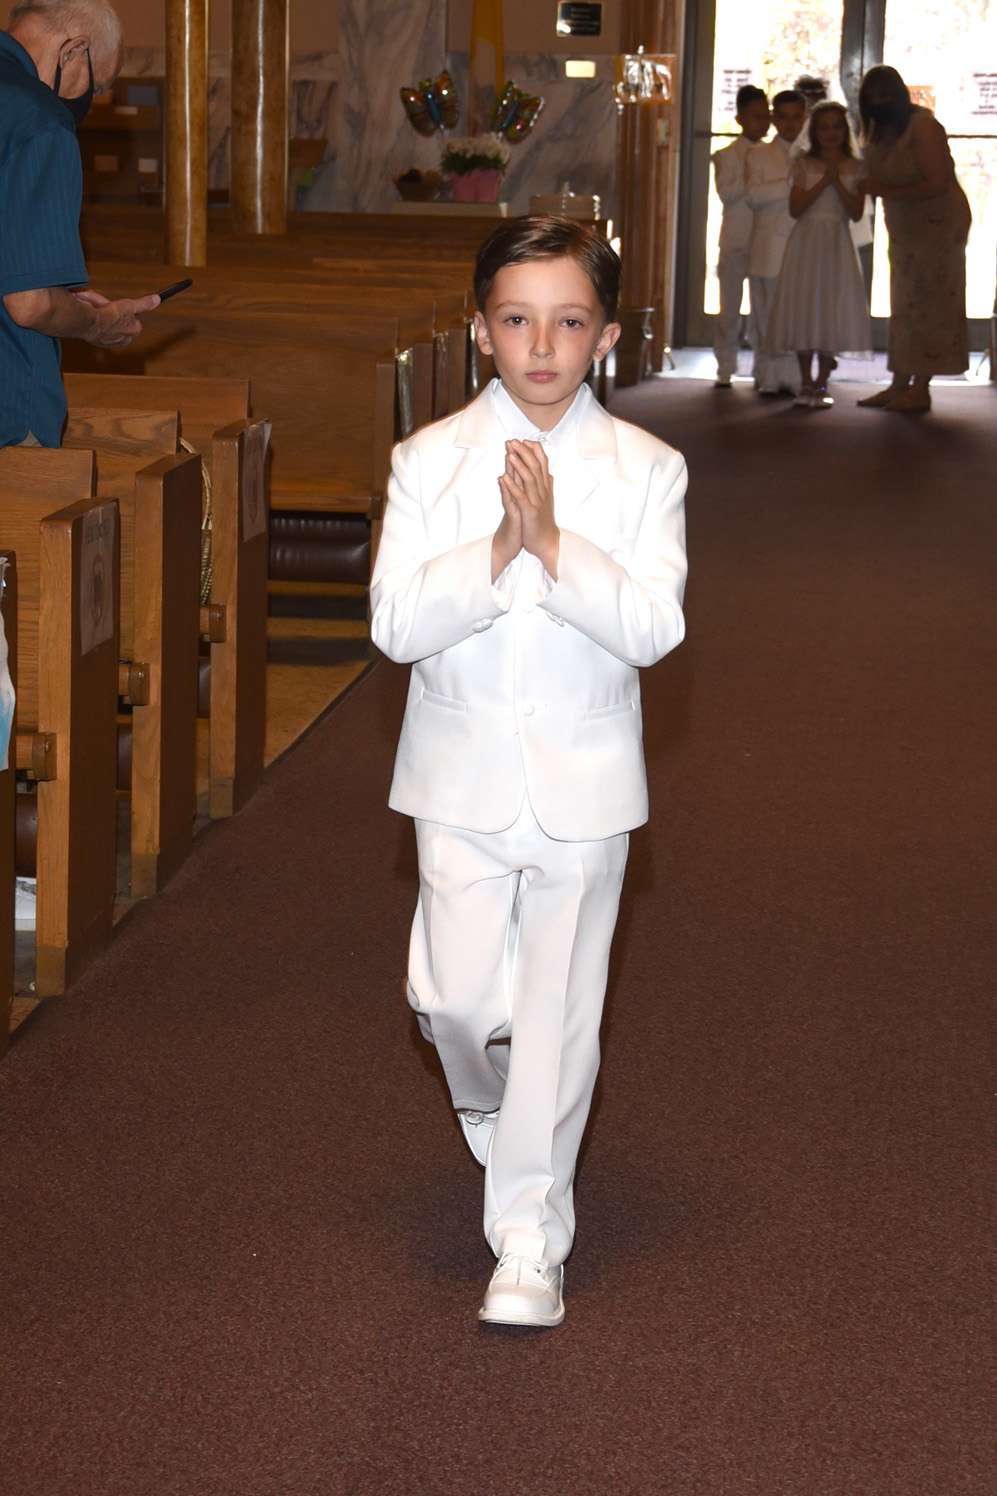 FIRST-COMMUNION-MAY-16-2021-170